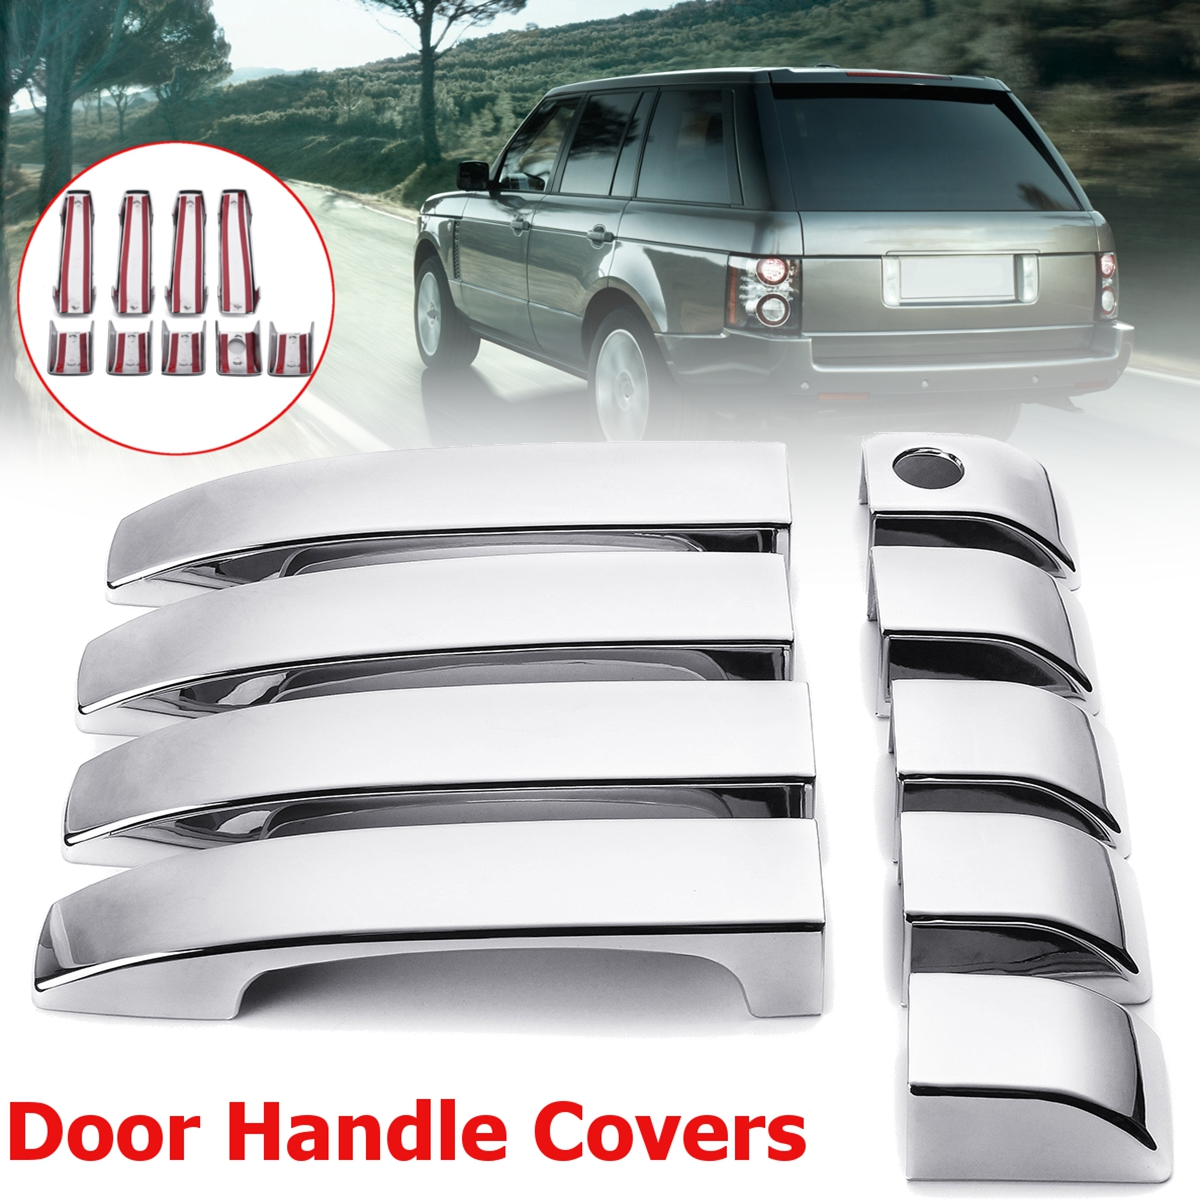 9pcs Set ABS Chrome 4 Door Handle Covers for Range Rover L322 Vogue 2002 2003 2004 2005 2006 2007 2008 2009 2010 2011 2012 2013 for suzuki swift 2004 2013 accessories chrome door handle covers 2005 2006 2007 2008 2009 2010 2011 2012 car styling stickers